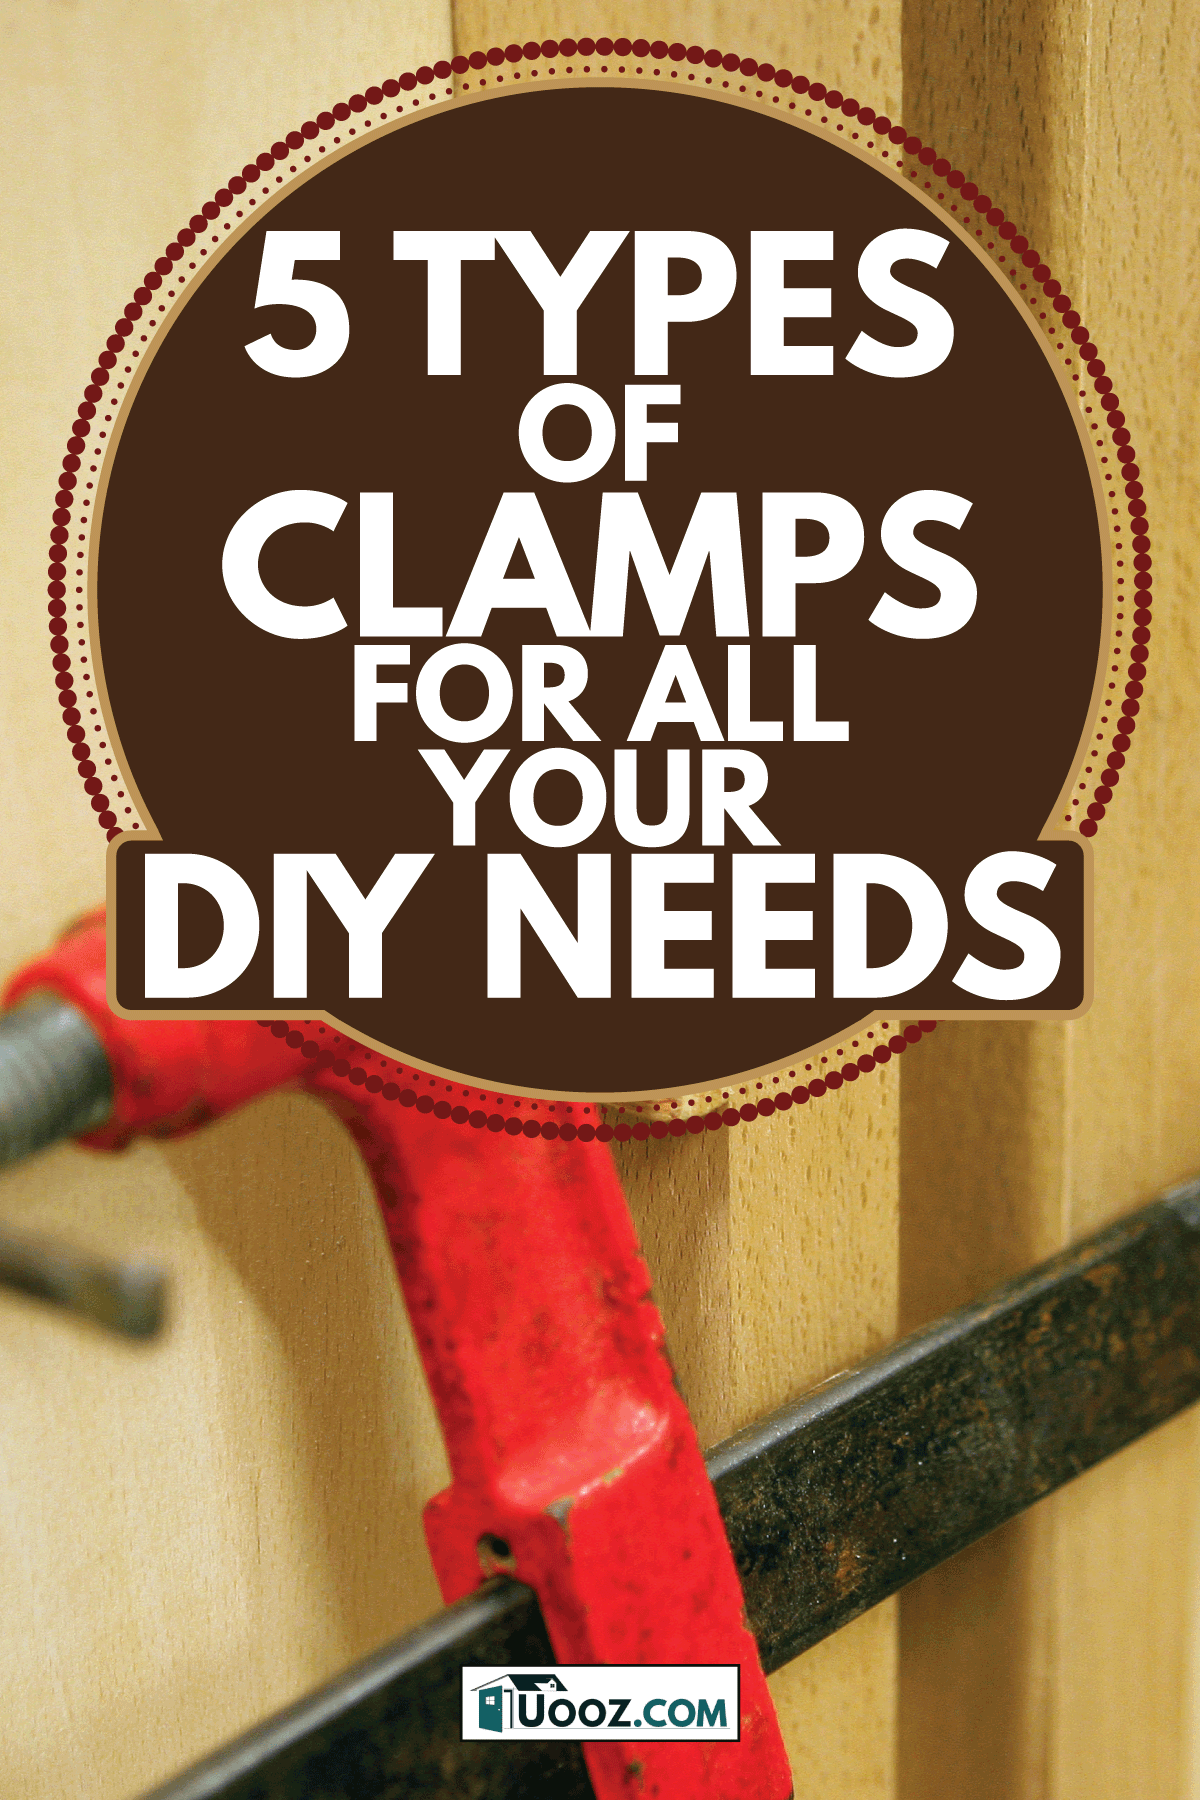 Wooden door with a red bar clamp attached to it. 5 Types Of Clamps For All Your DIY Needs